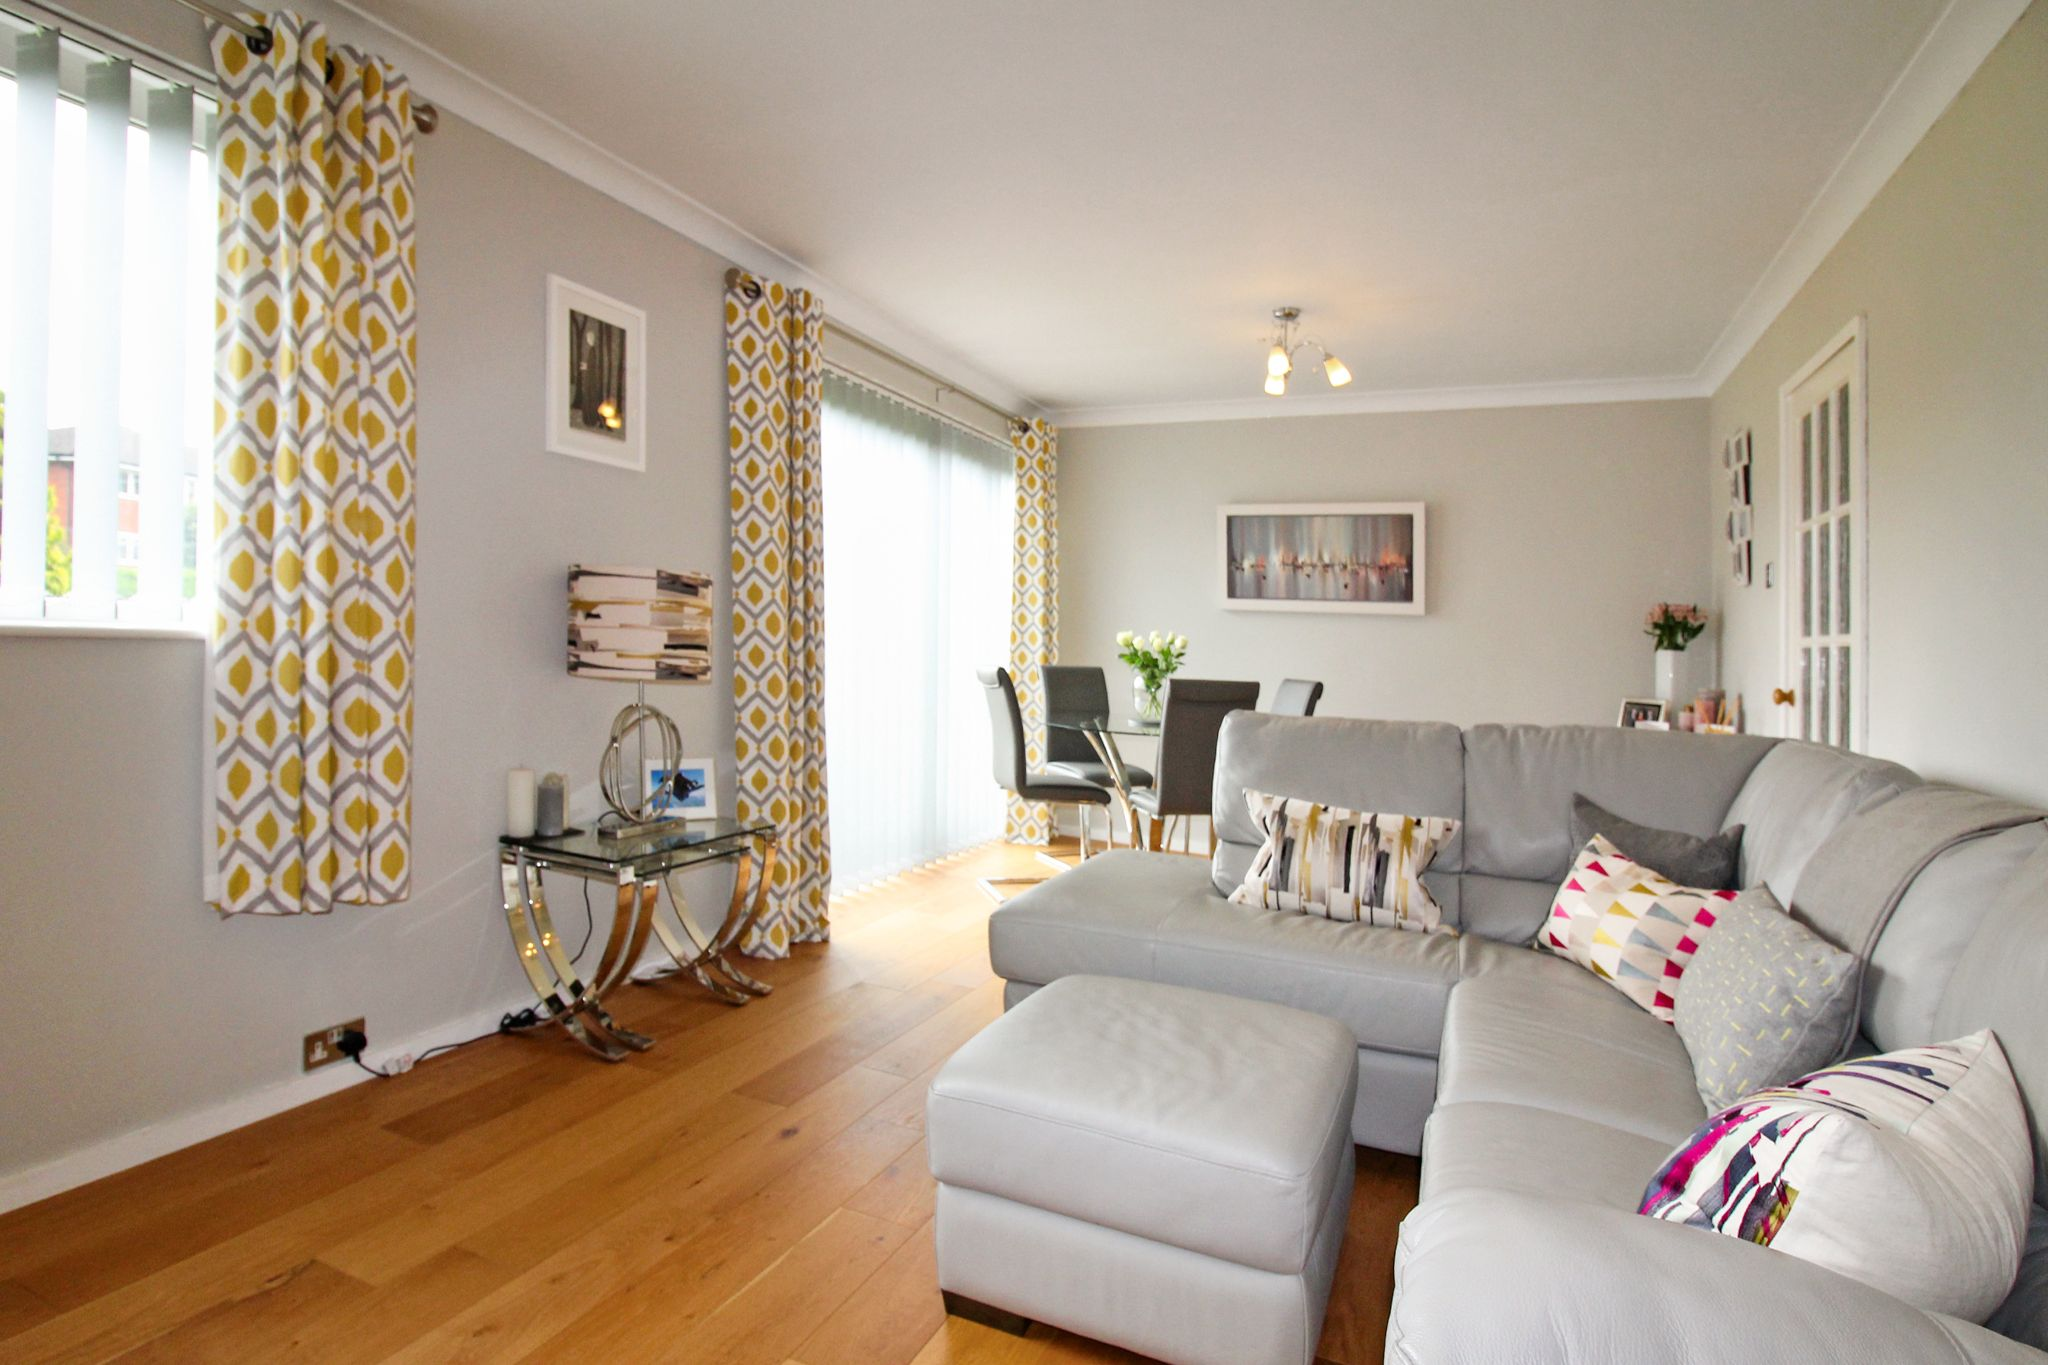 2 bedroom ground floor flat/apartment For Sale in Solihull - Photograph 2.